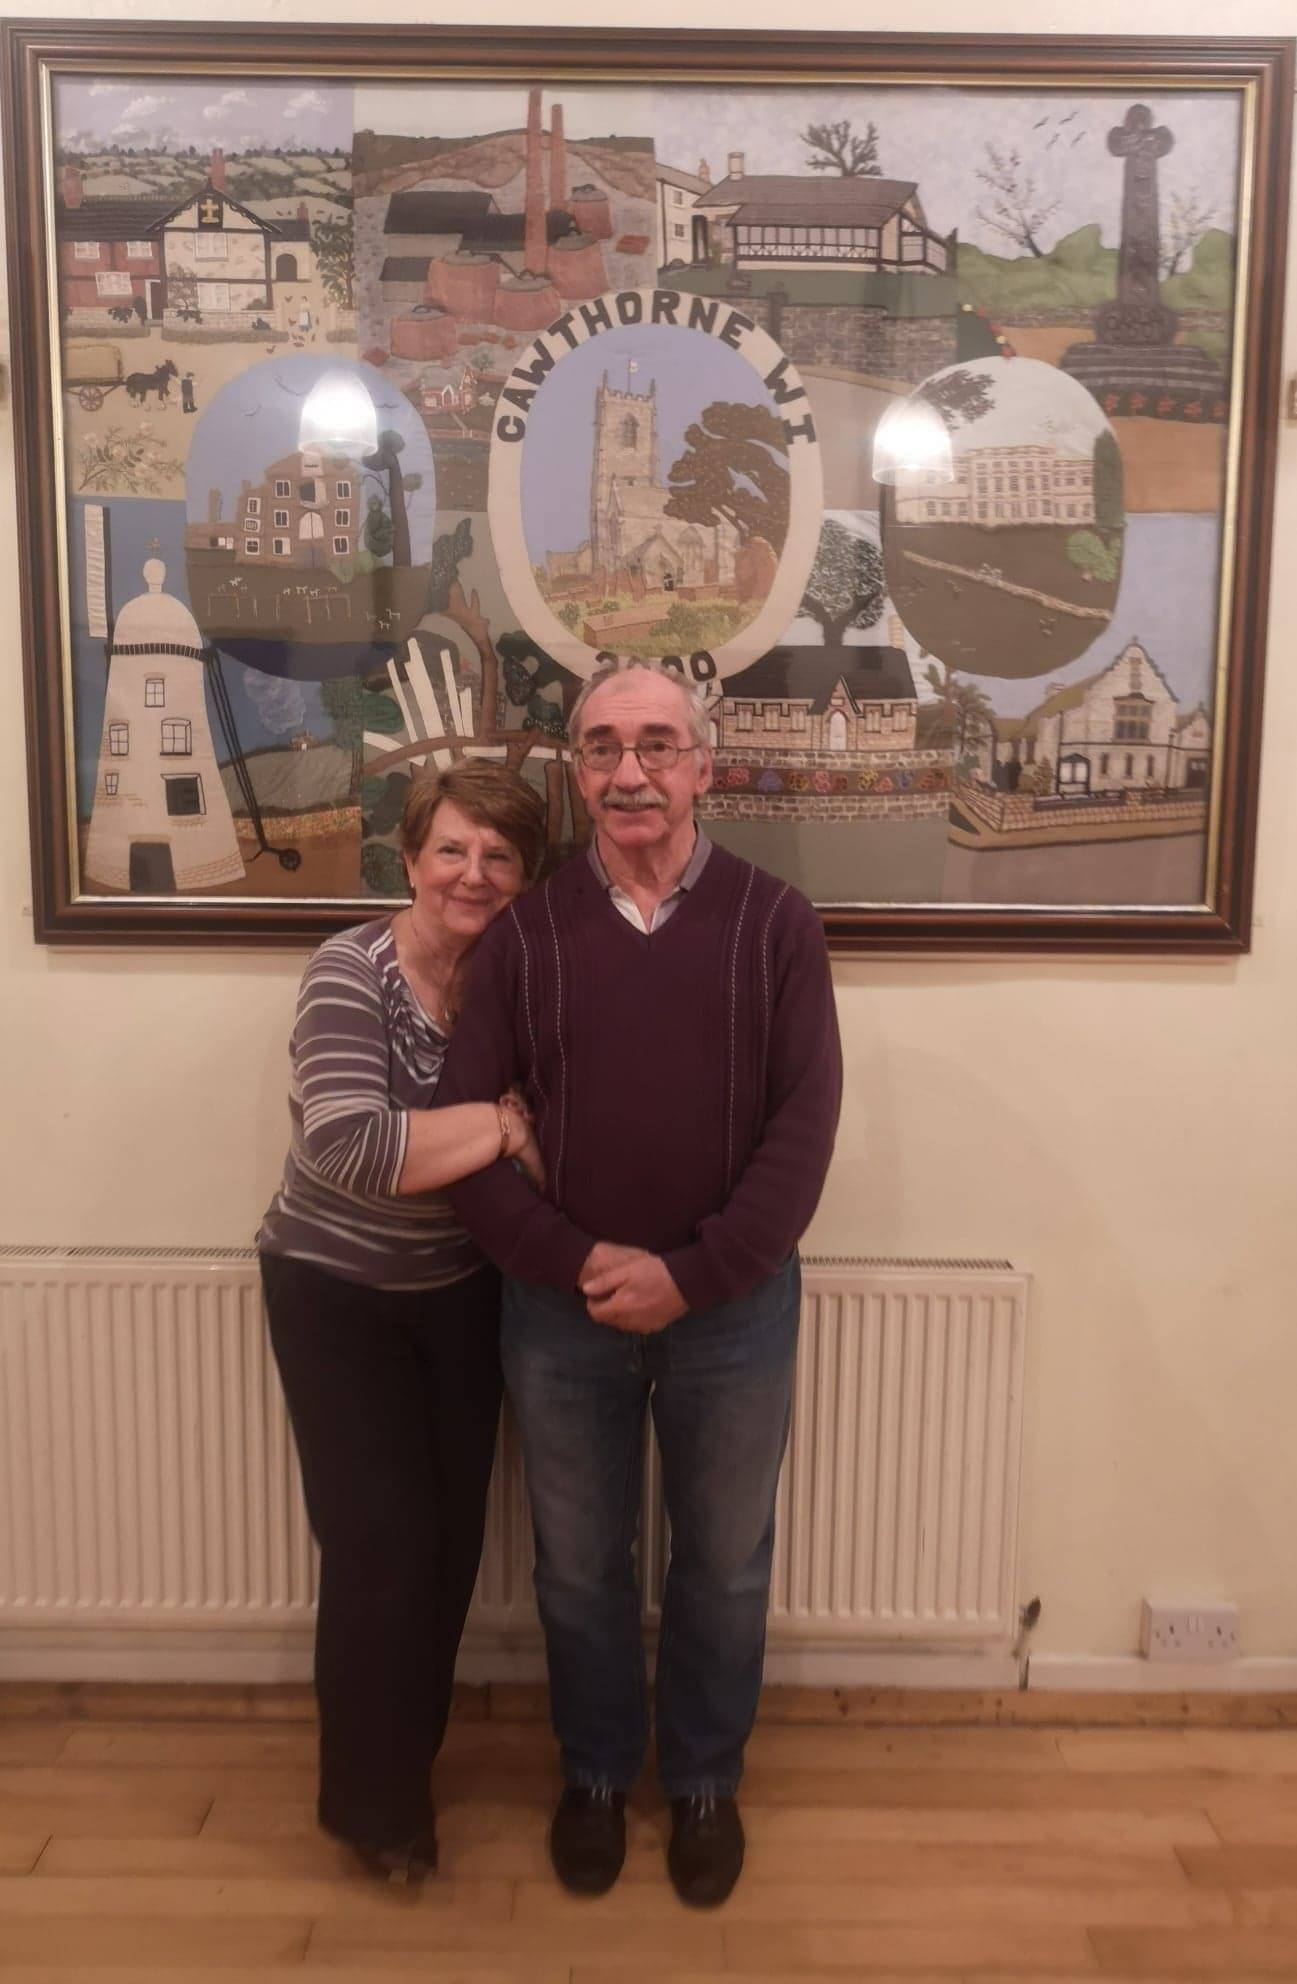 Alan and Christine stand in front of the Cawthorne WI tapestry